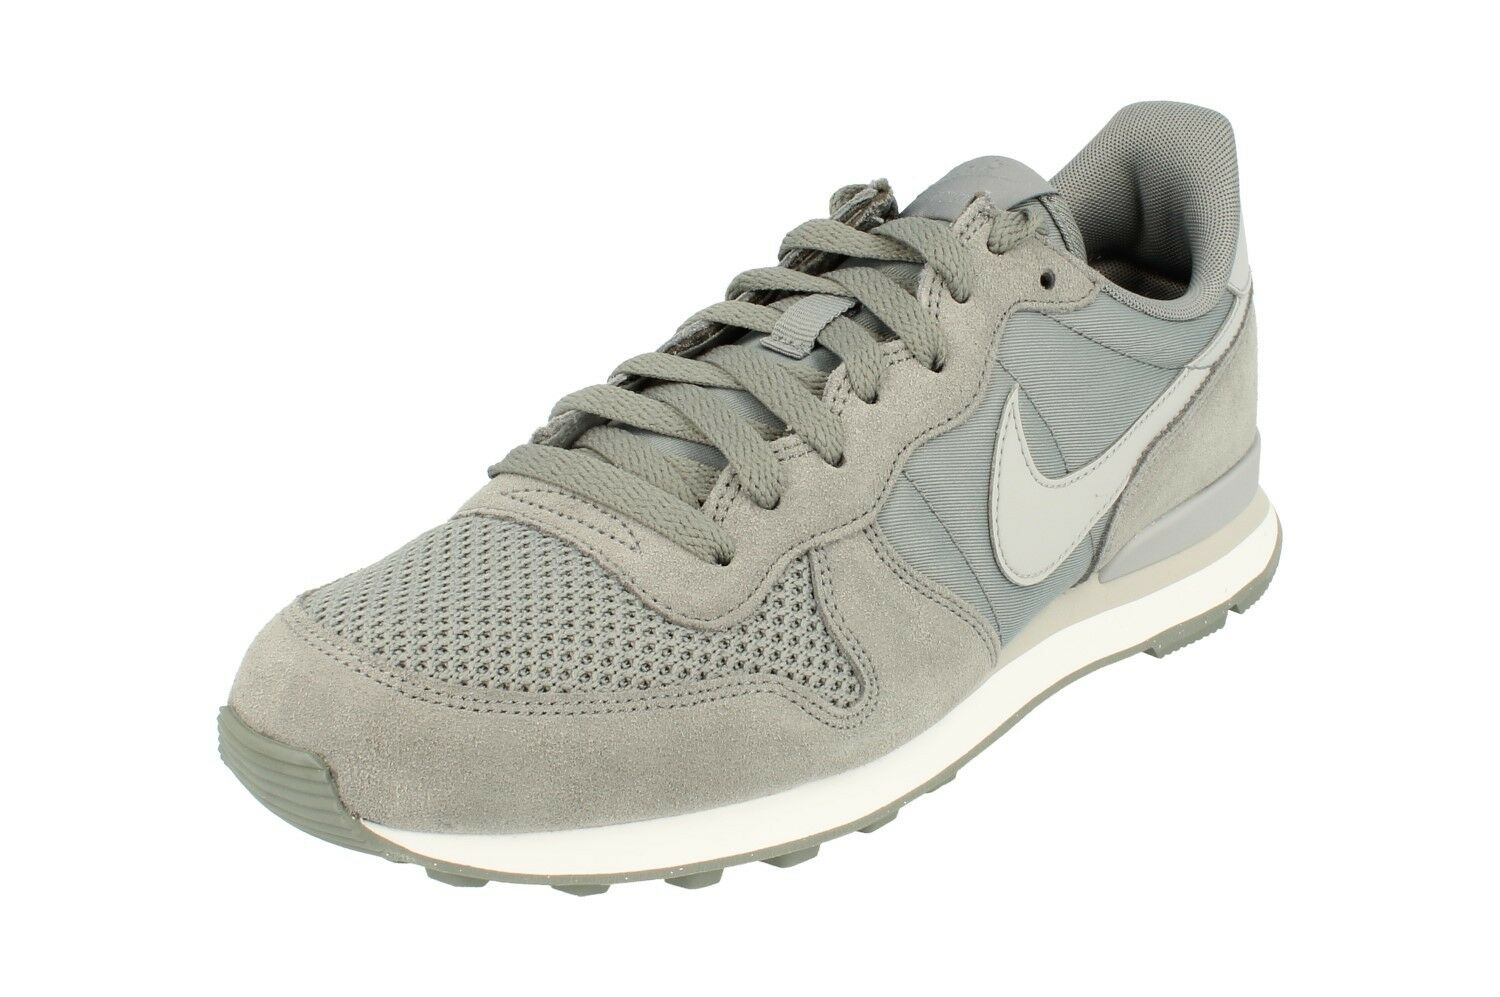 Nike Internationalist Se Mens Trainers Av8224 Sneakers shoes 001